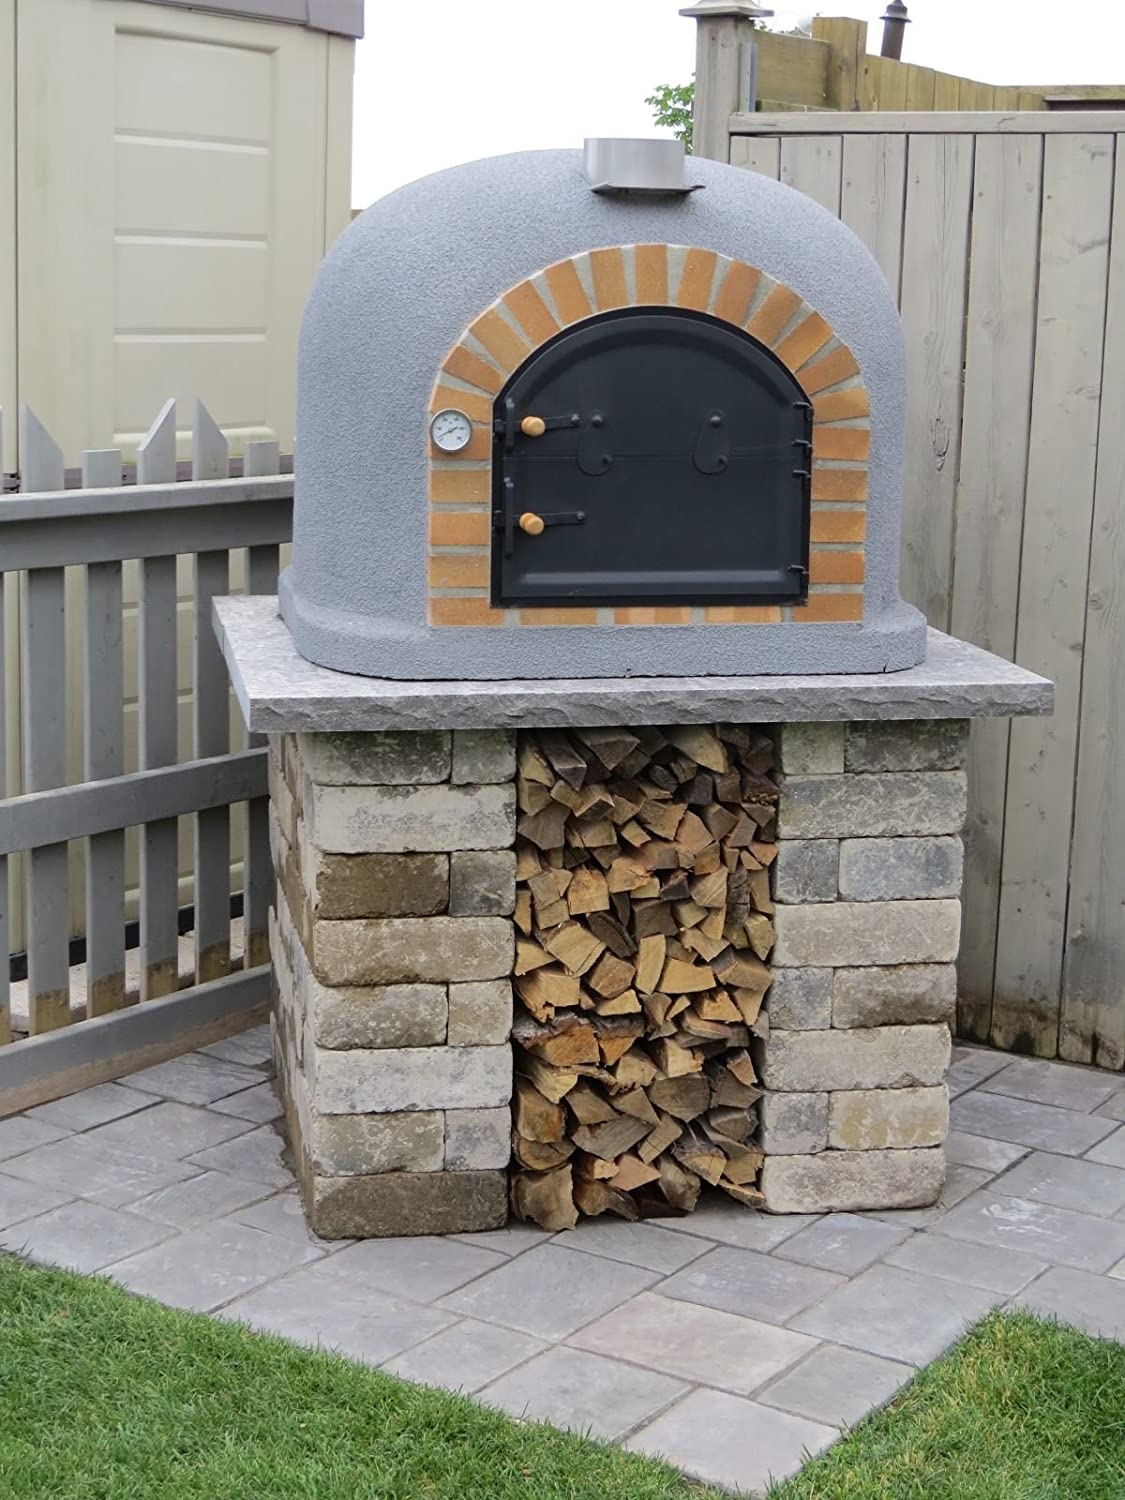 Pizza Oven Outdoor Kitchen Amazoncom Outdoor Pizza Oven Wood Fired Insulated W Brick